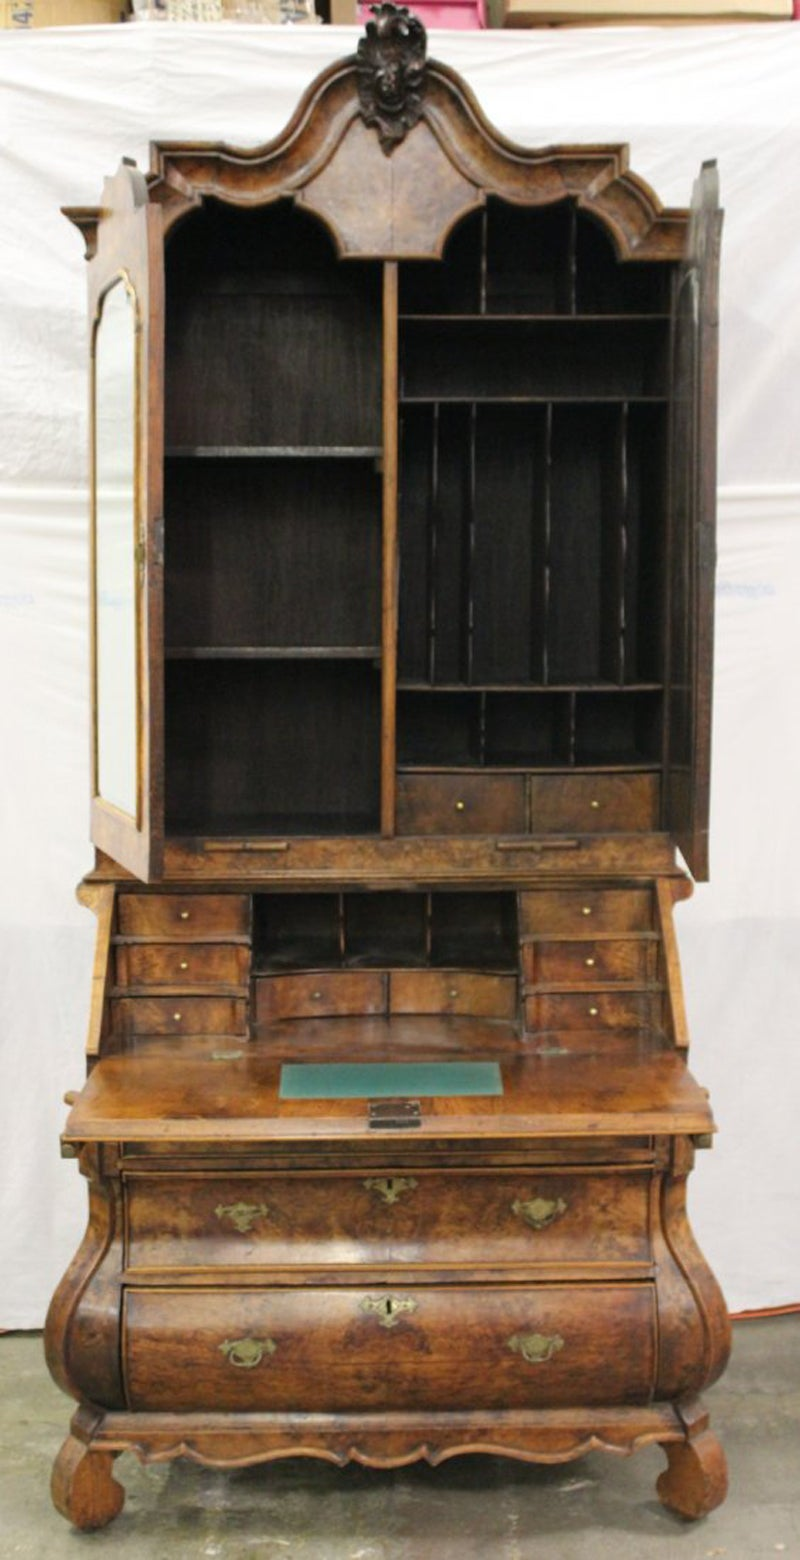 Captivating 18th Century Dutch Baroque Burl Walnut Secretary Cabinet For Sale At 1stdibs